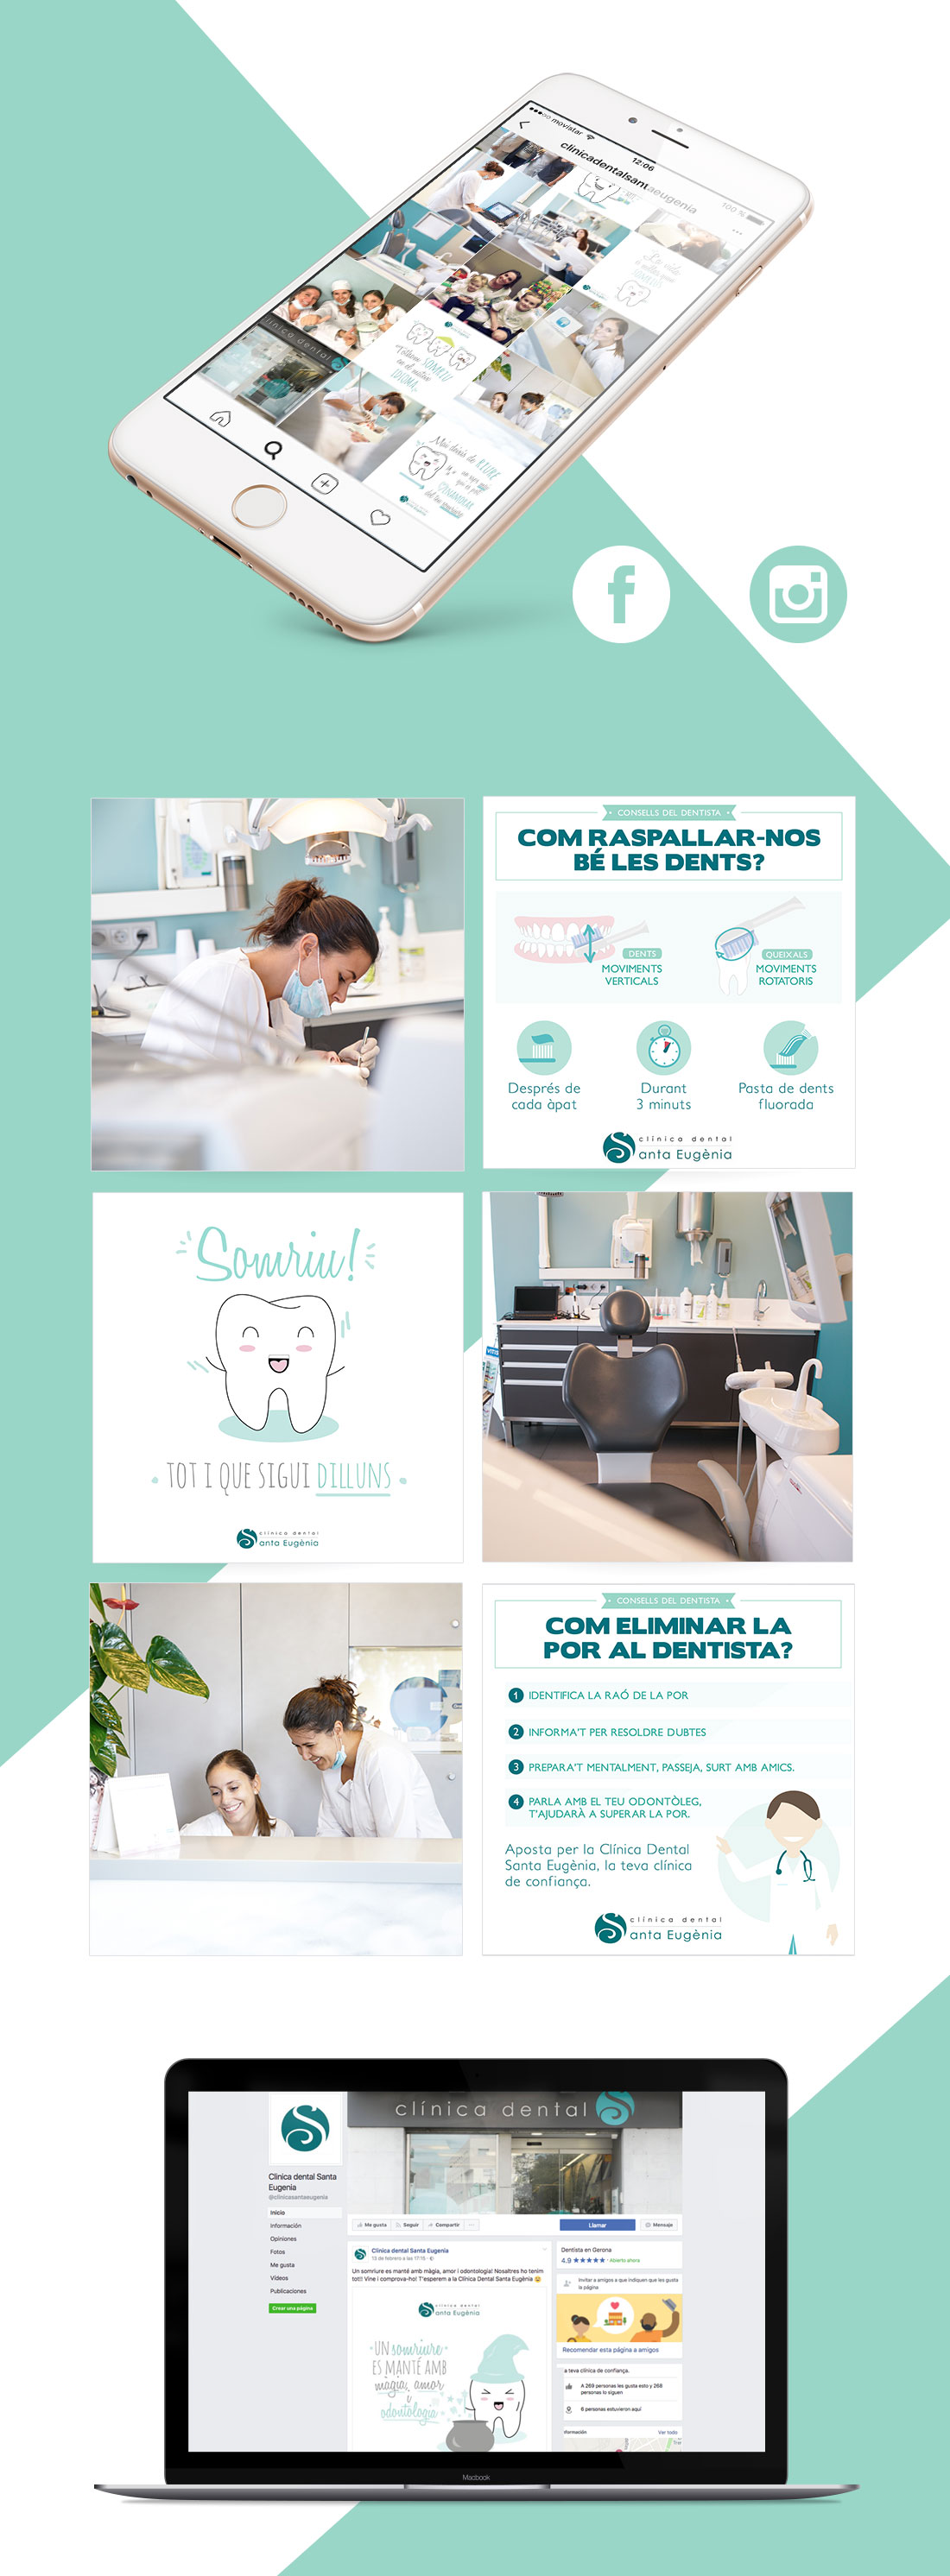 clinica-dental-santa-eugenia-social-management